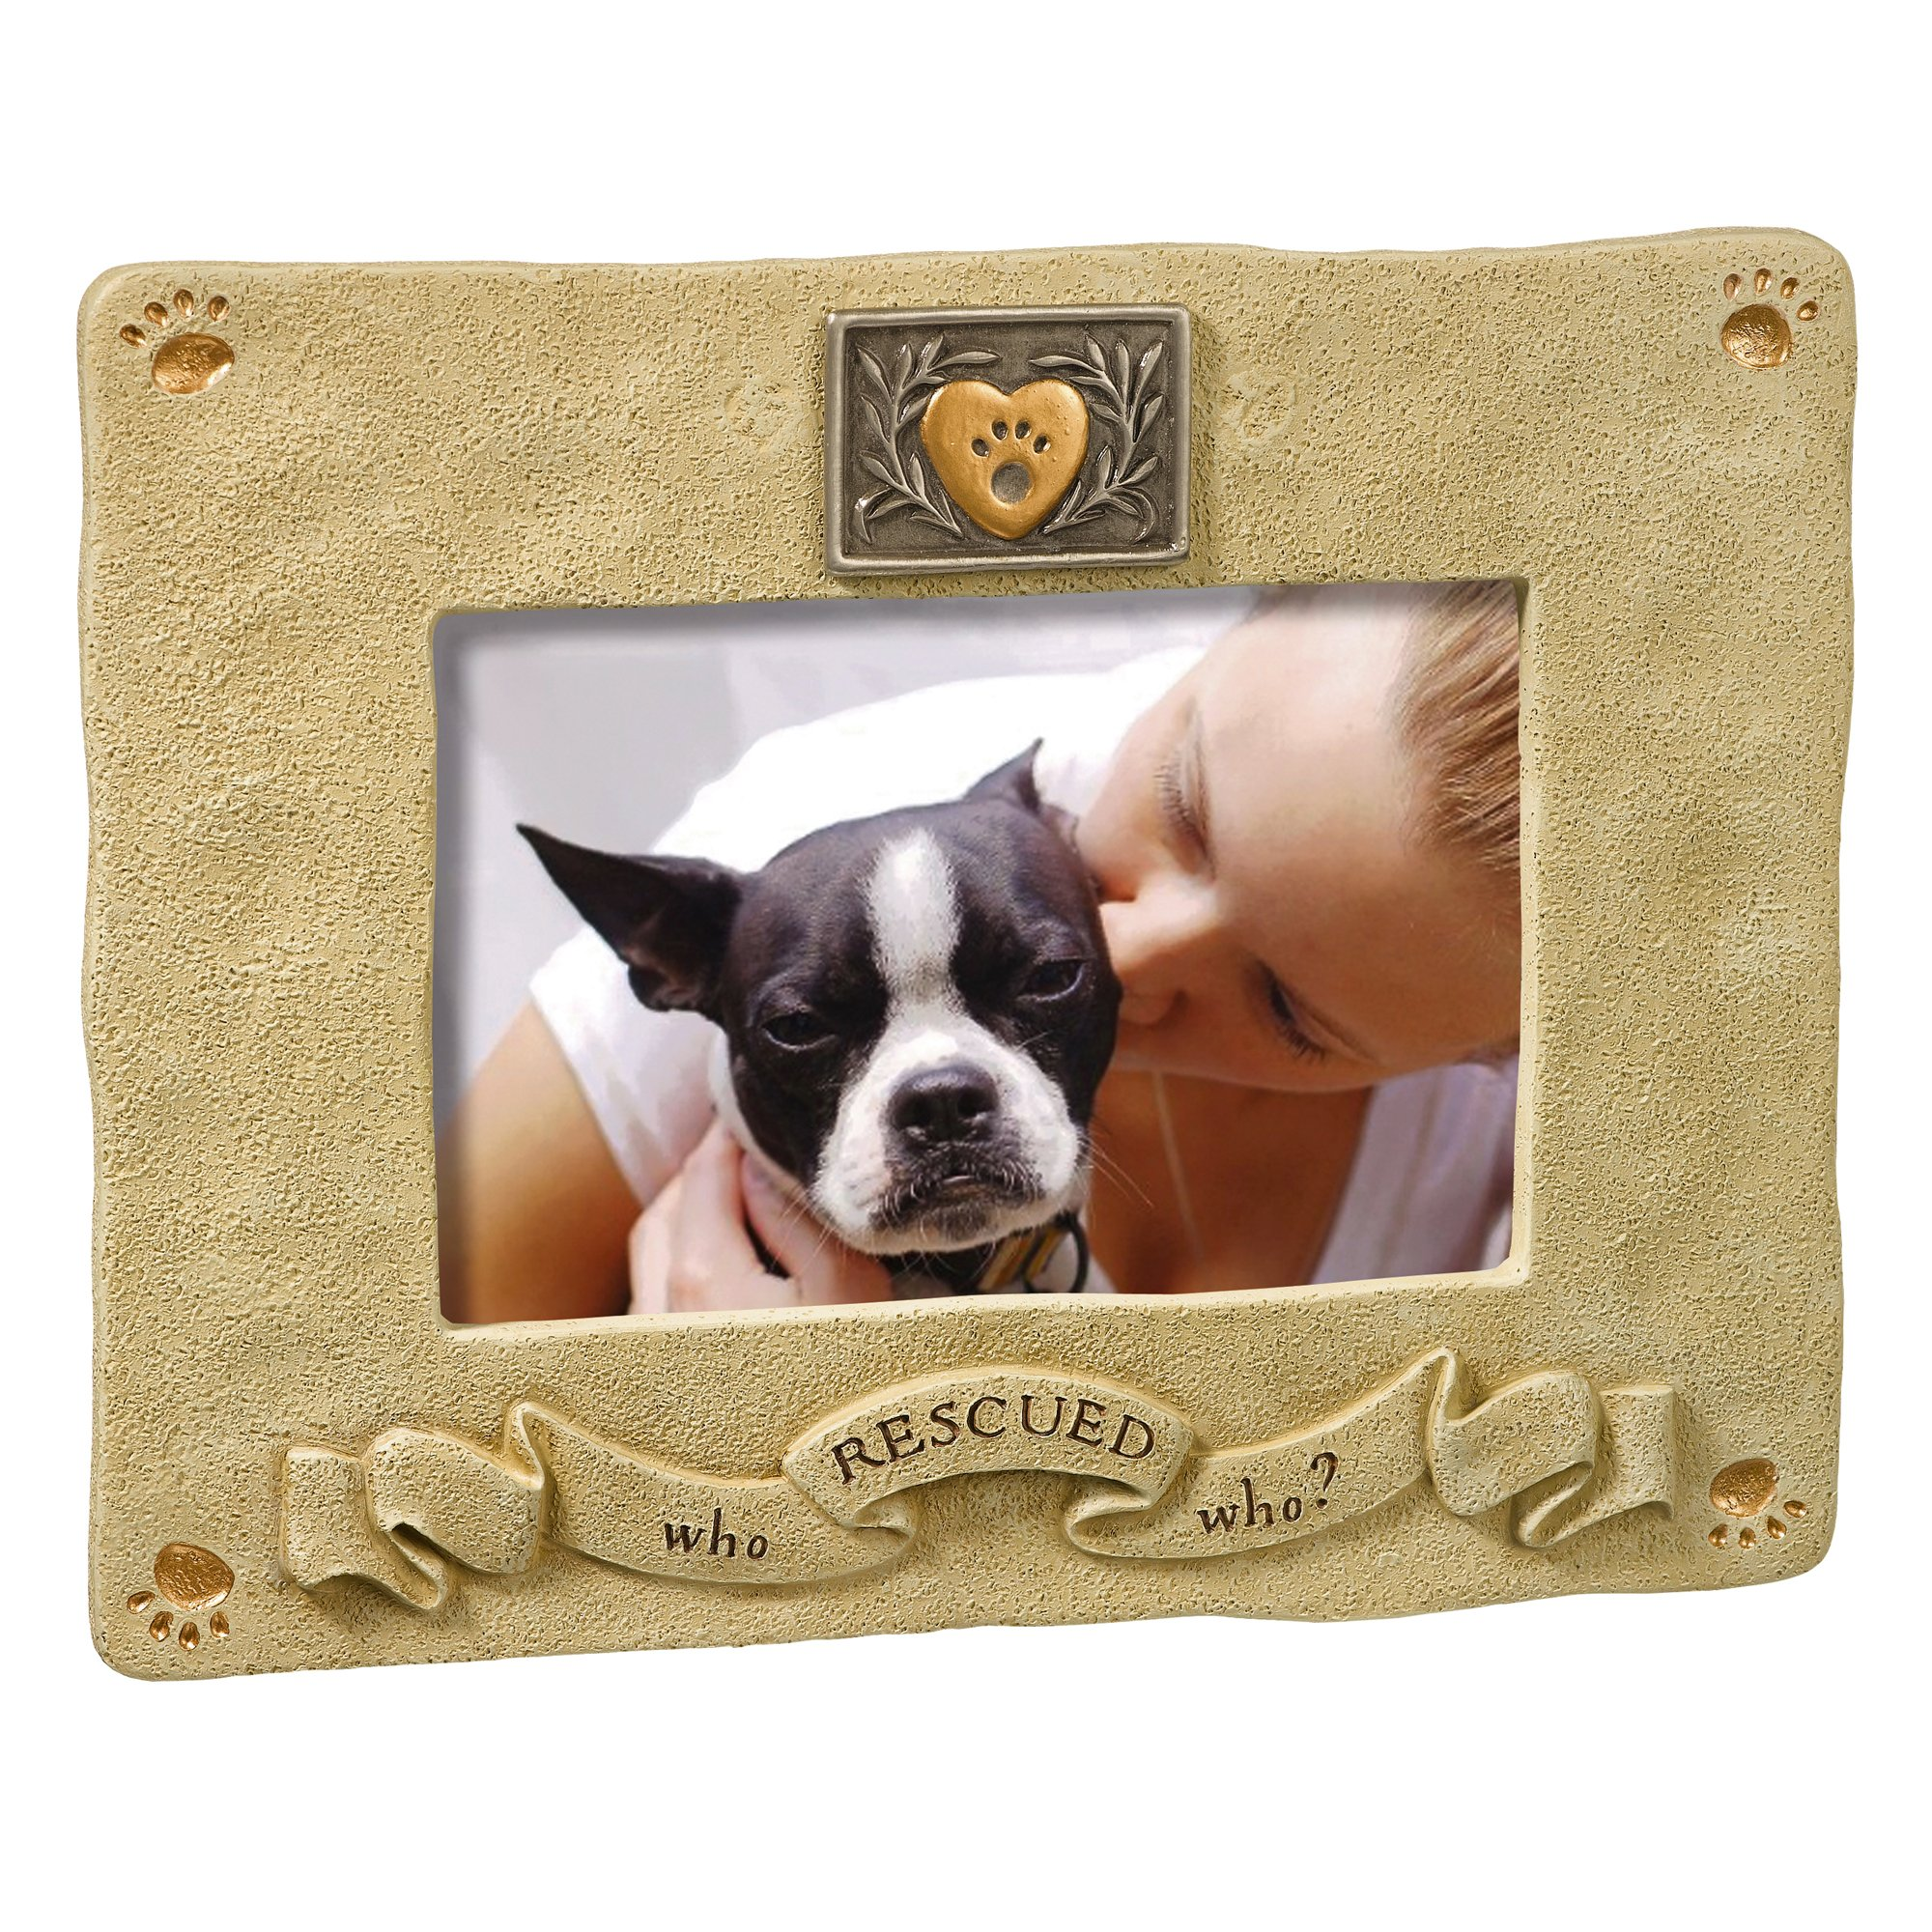 Grasslands Road Rescued Picture Frame, 4 by 6-Inch by Grasslands Road (Image #1)